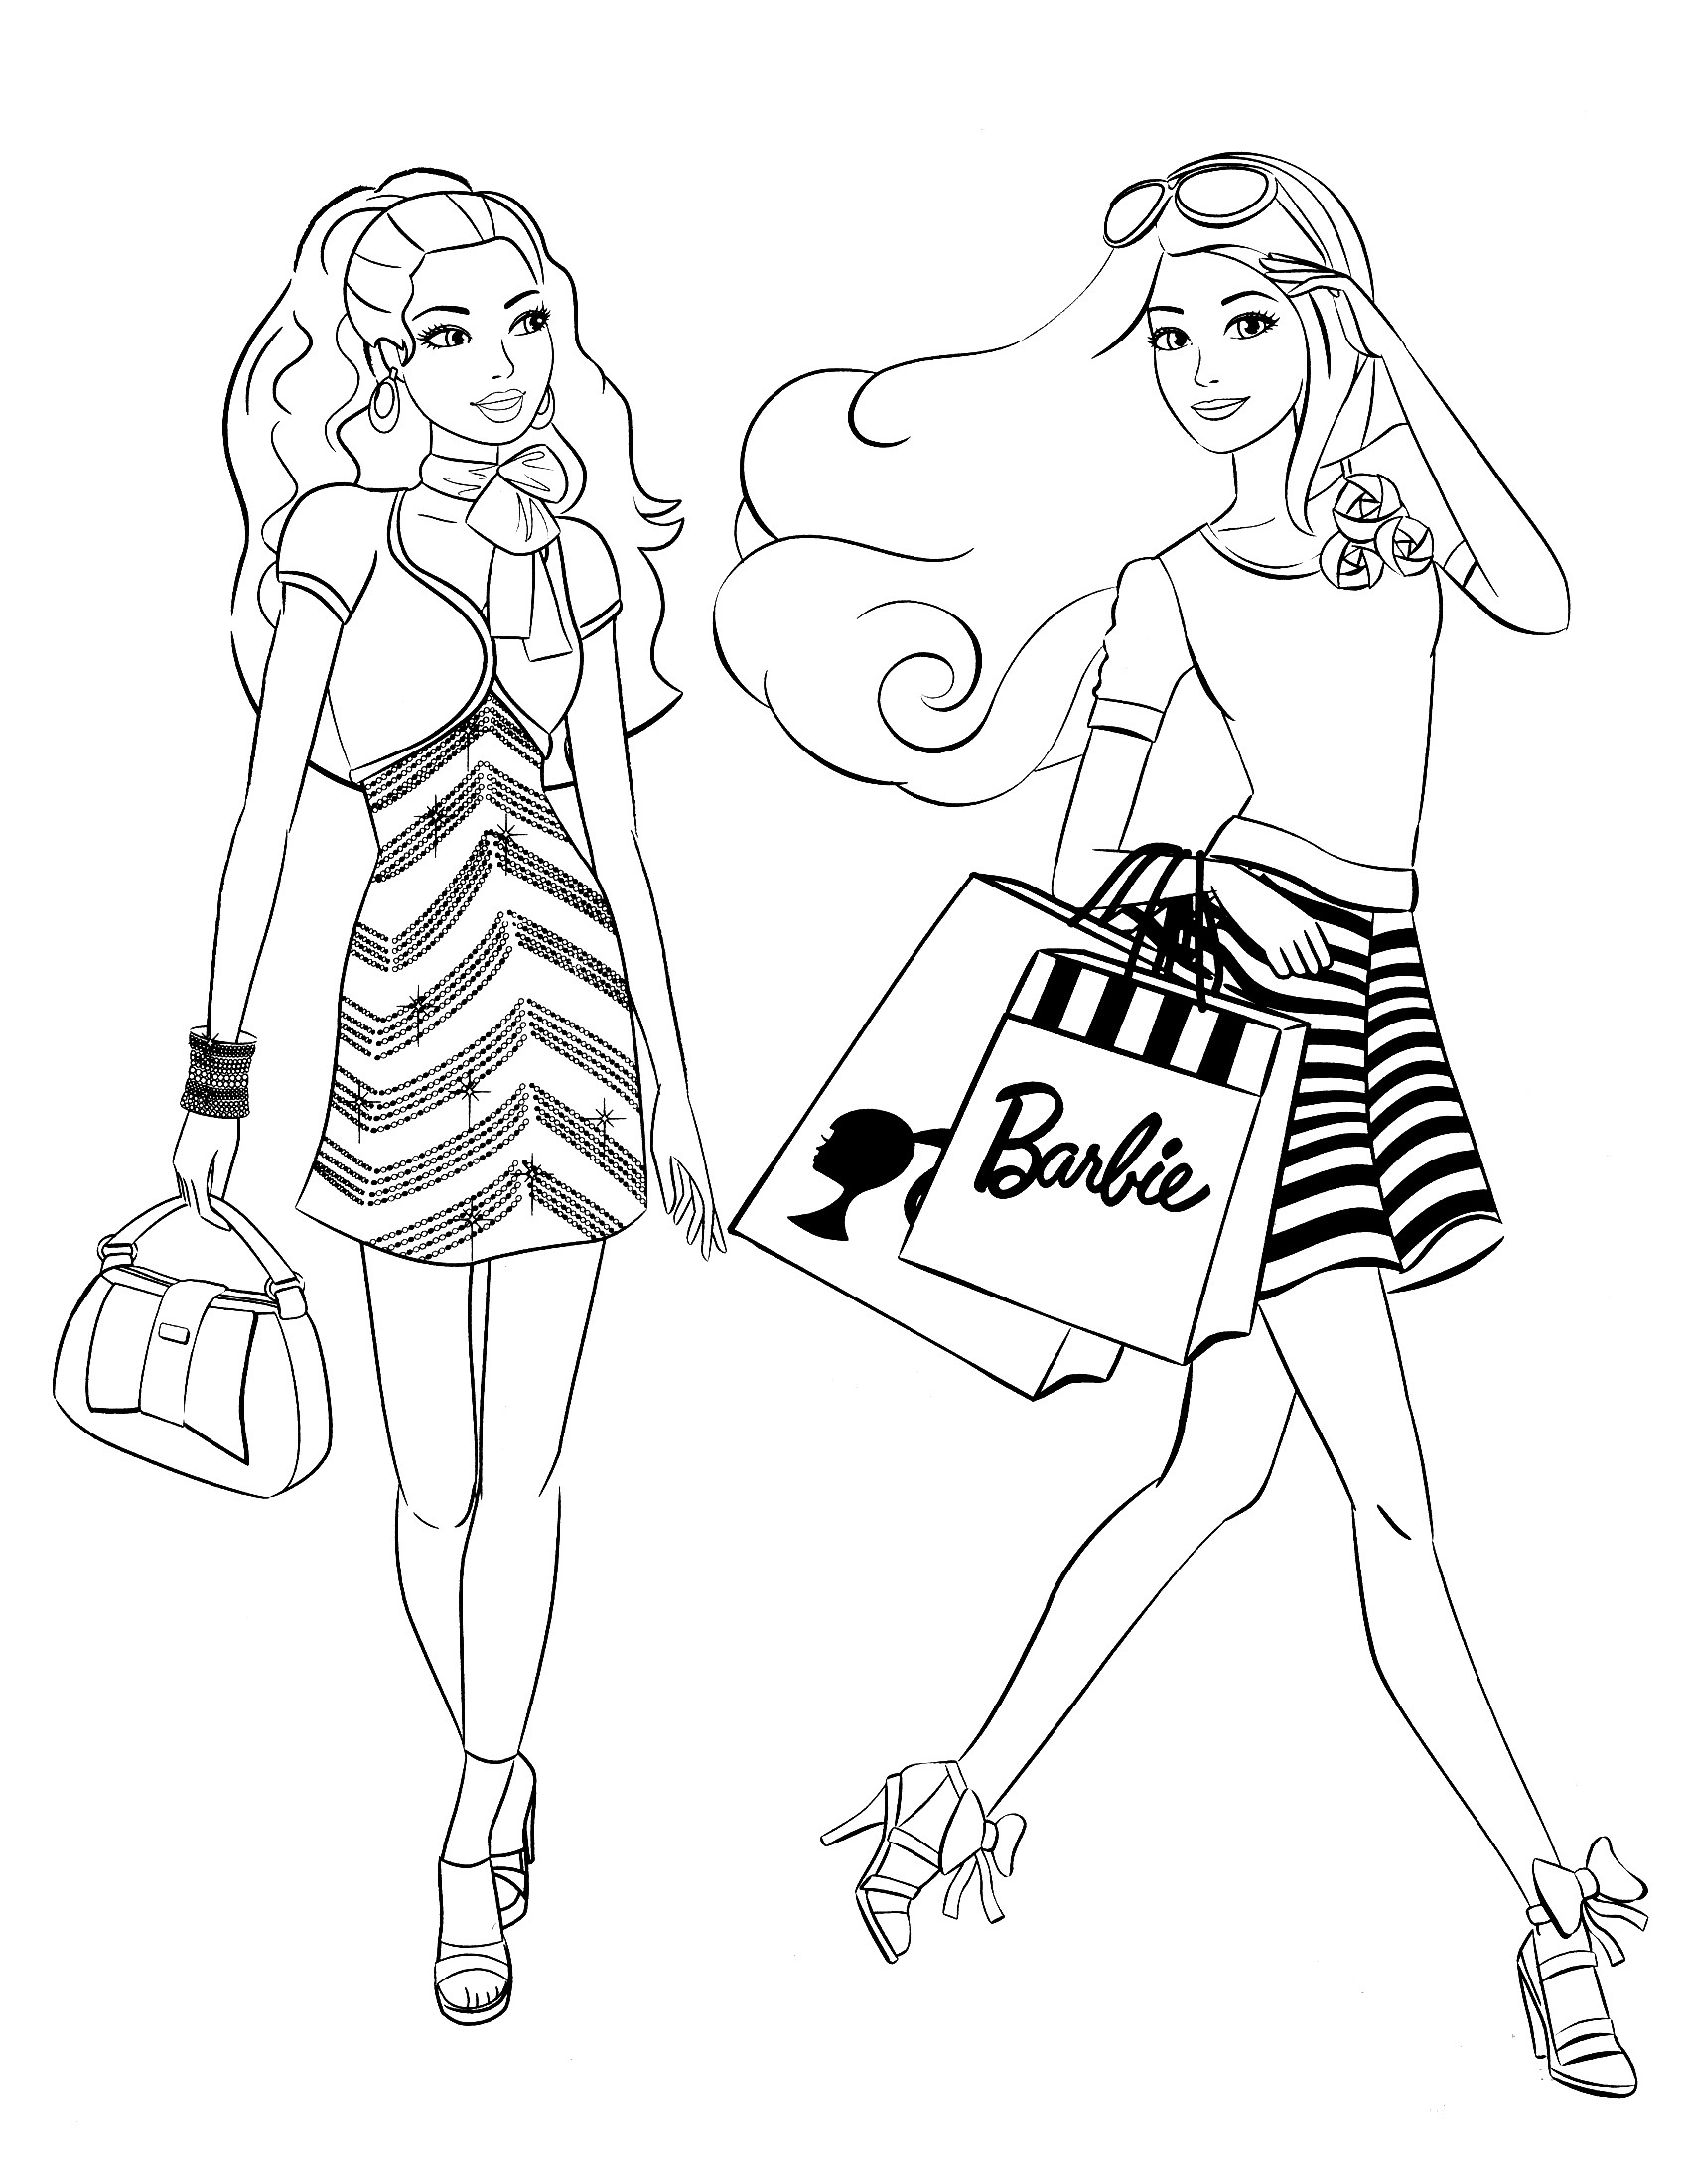 Coloring Pages For Girls Barbie  85 Barbie Coloring Pages for Girls Barbie Princess